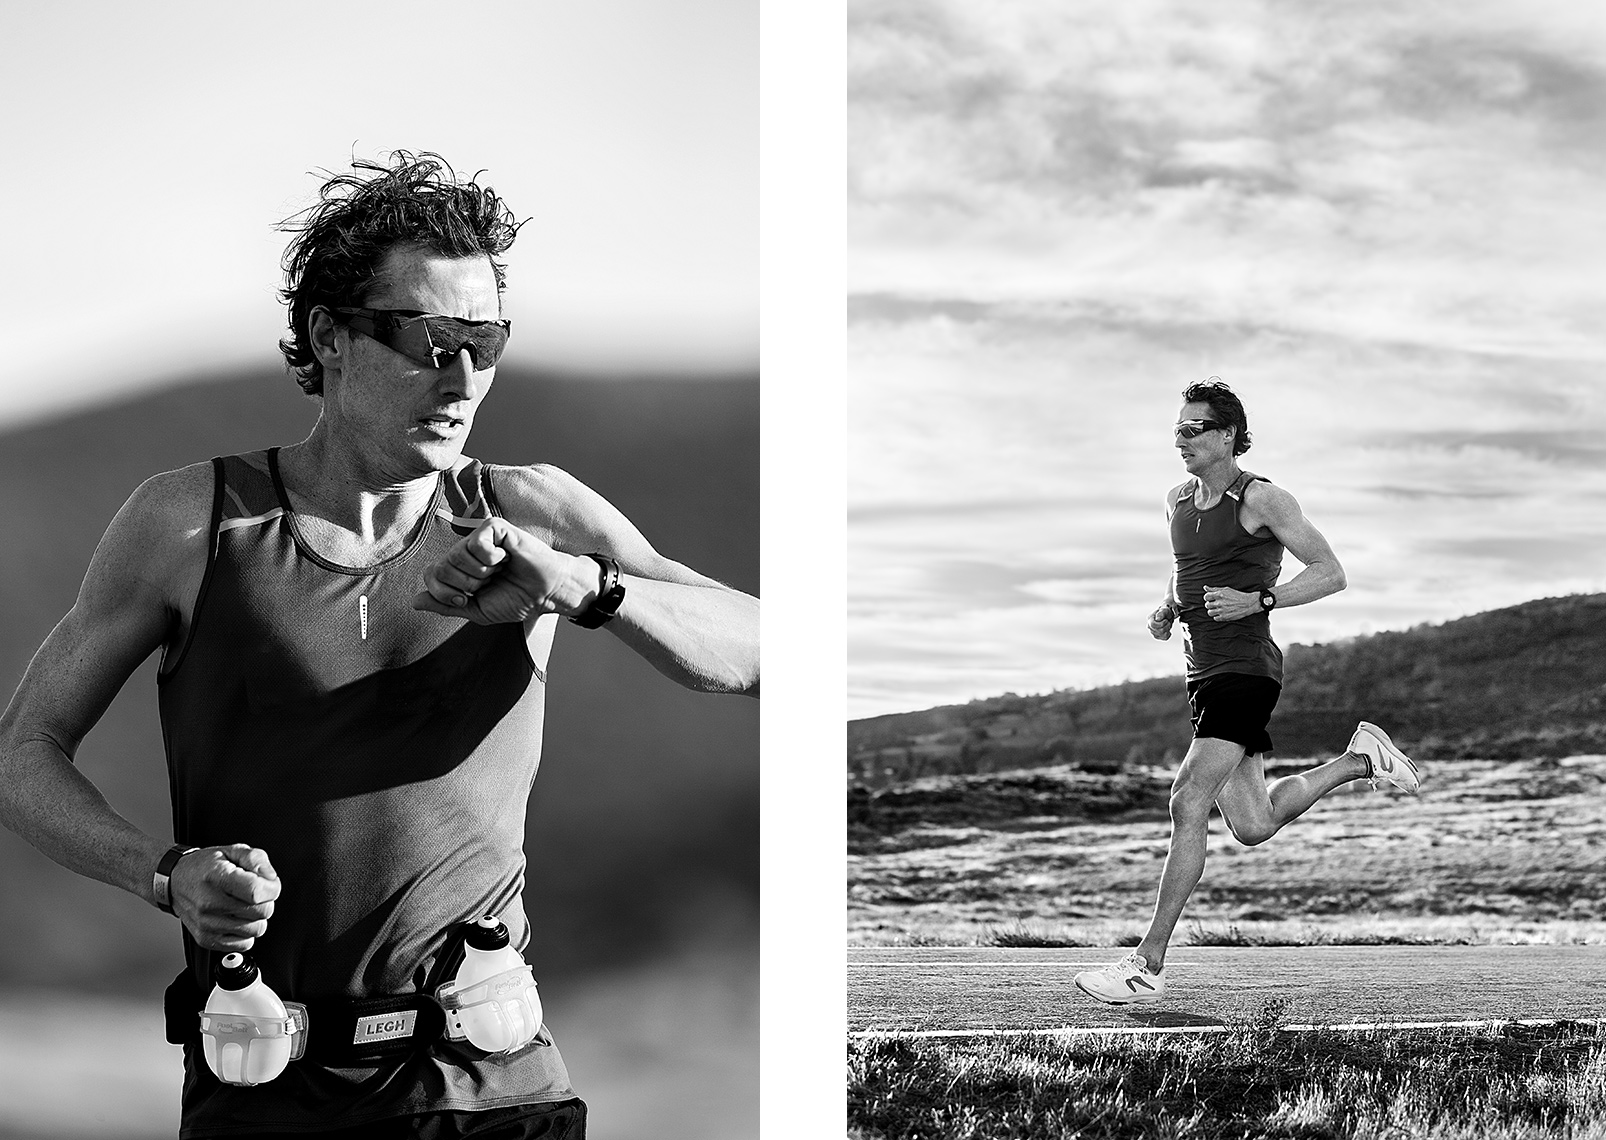 Sports Photographer STEVE BOYLE - Powder Sports - Chris Legh for Gatorade Endurance